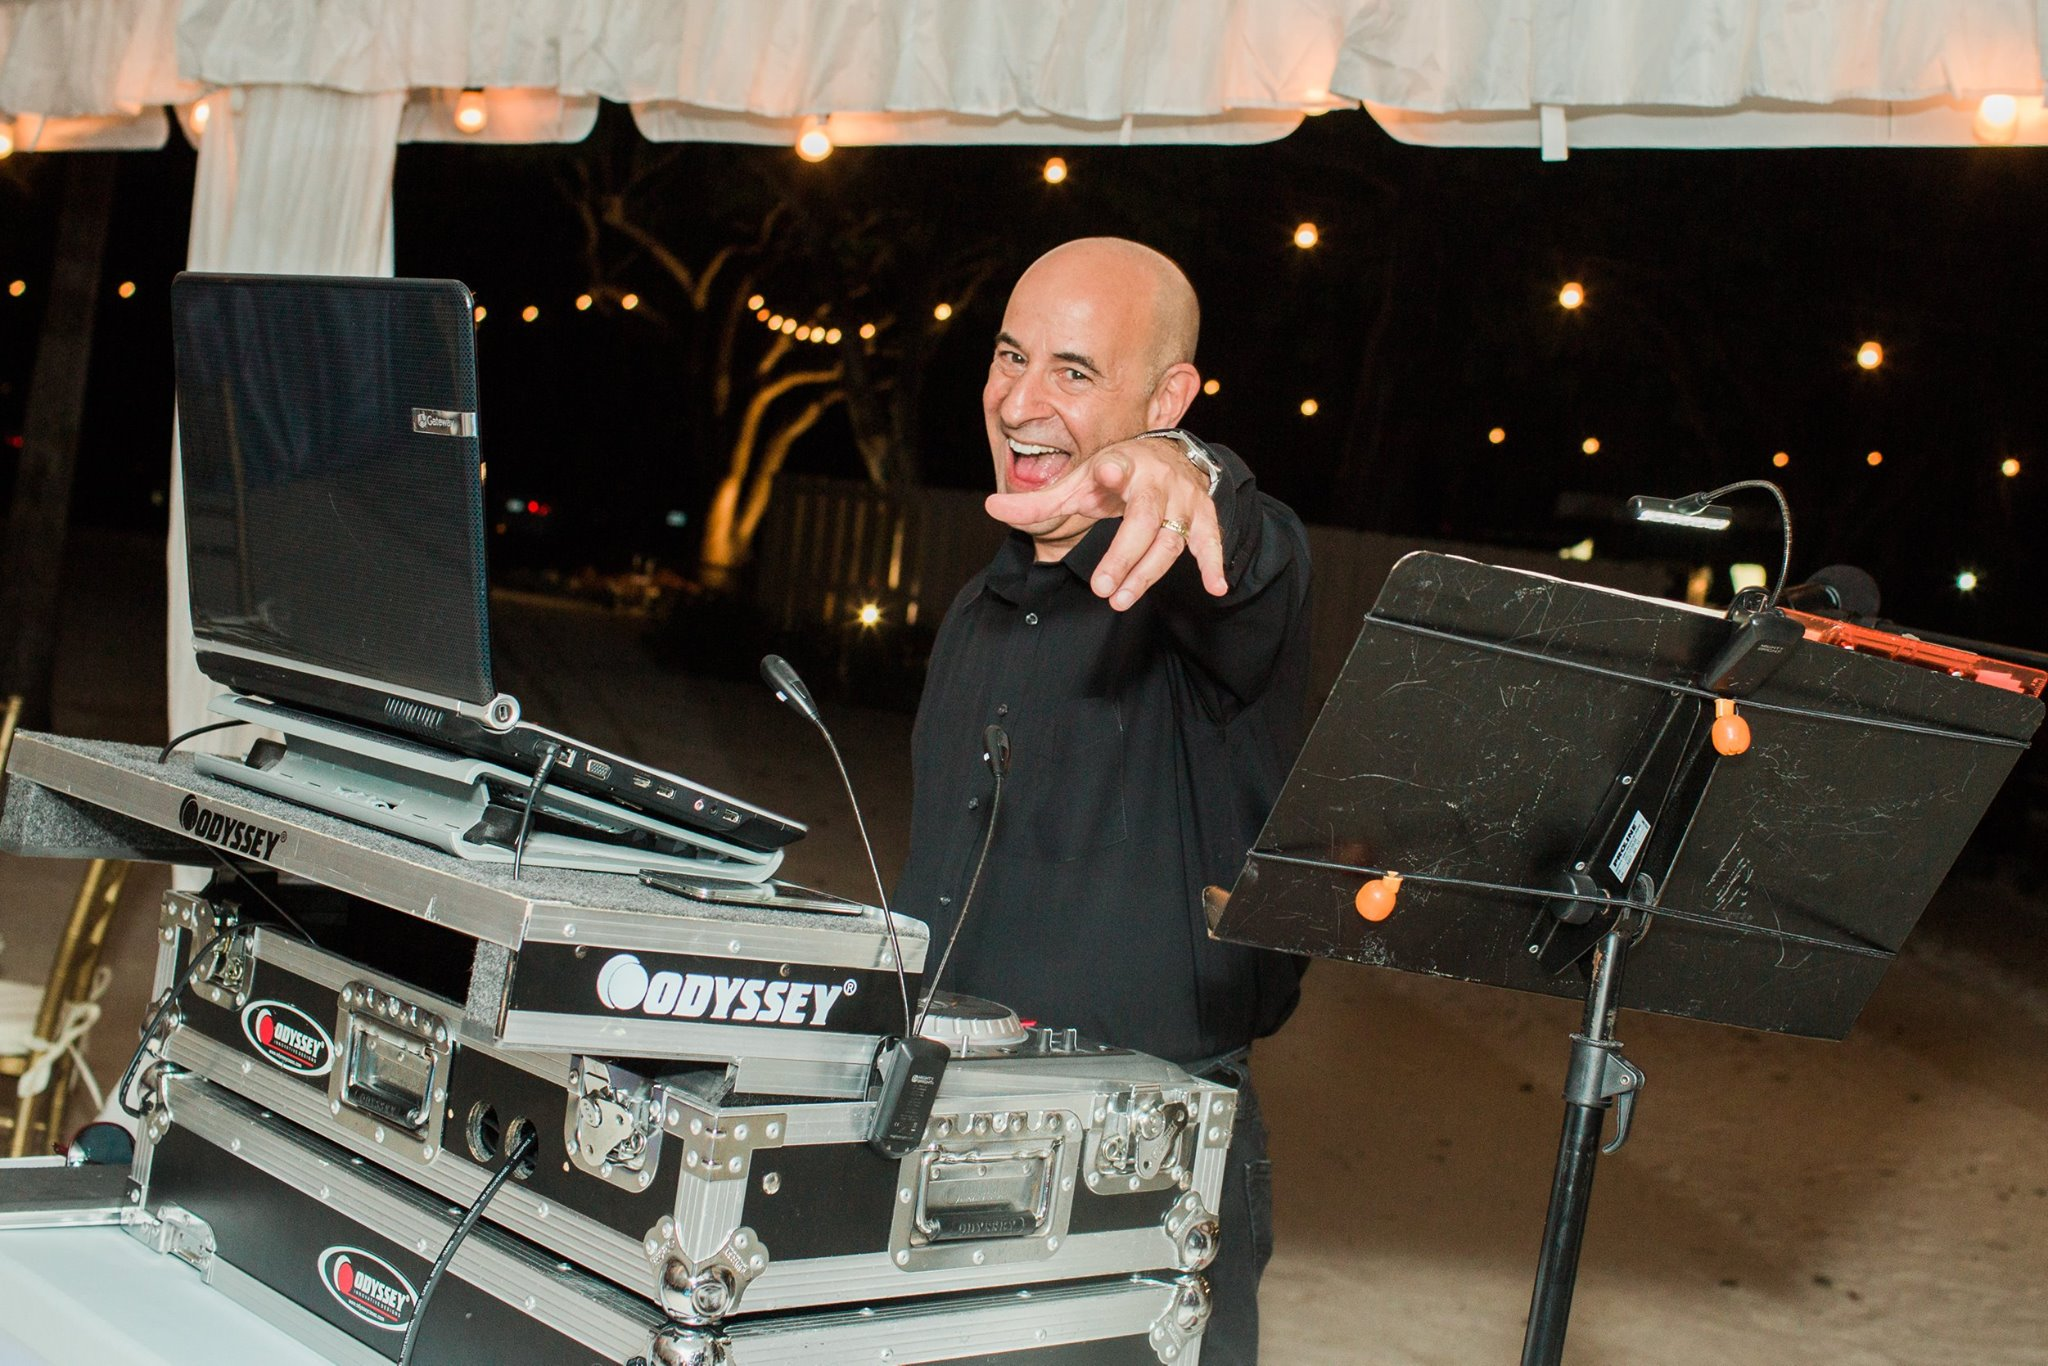 Special Event DJ in South Florida